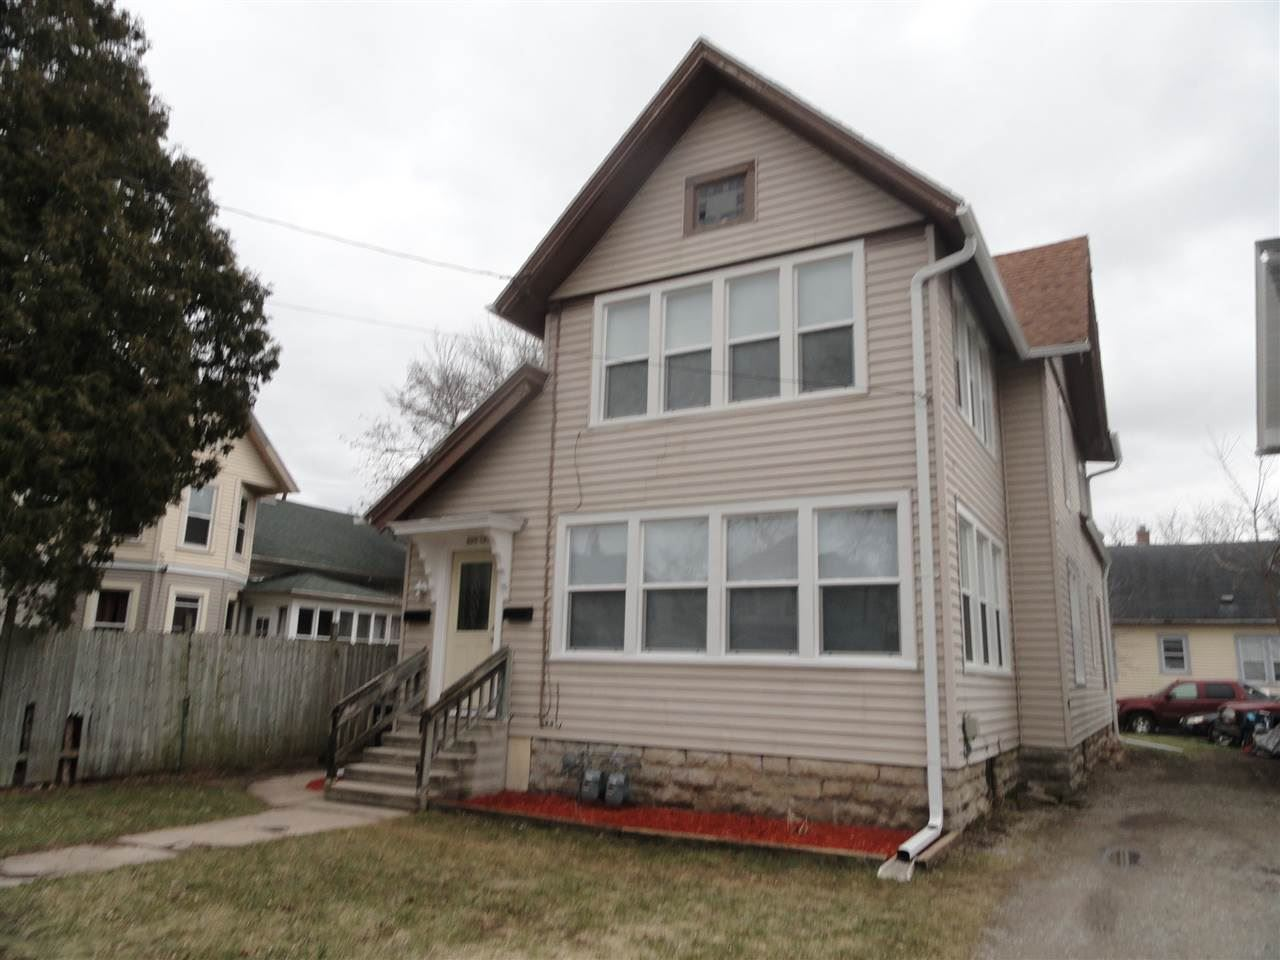 107 E FULTON Avenue, Oshkosh, WI 54901 - MLS#: 50238181